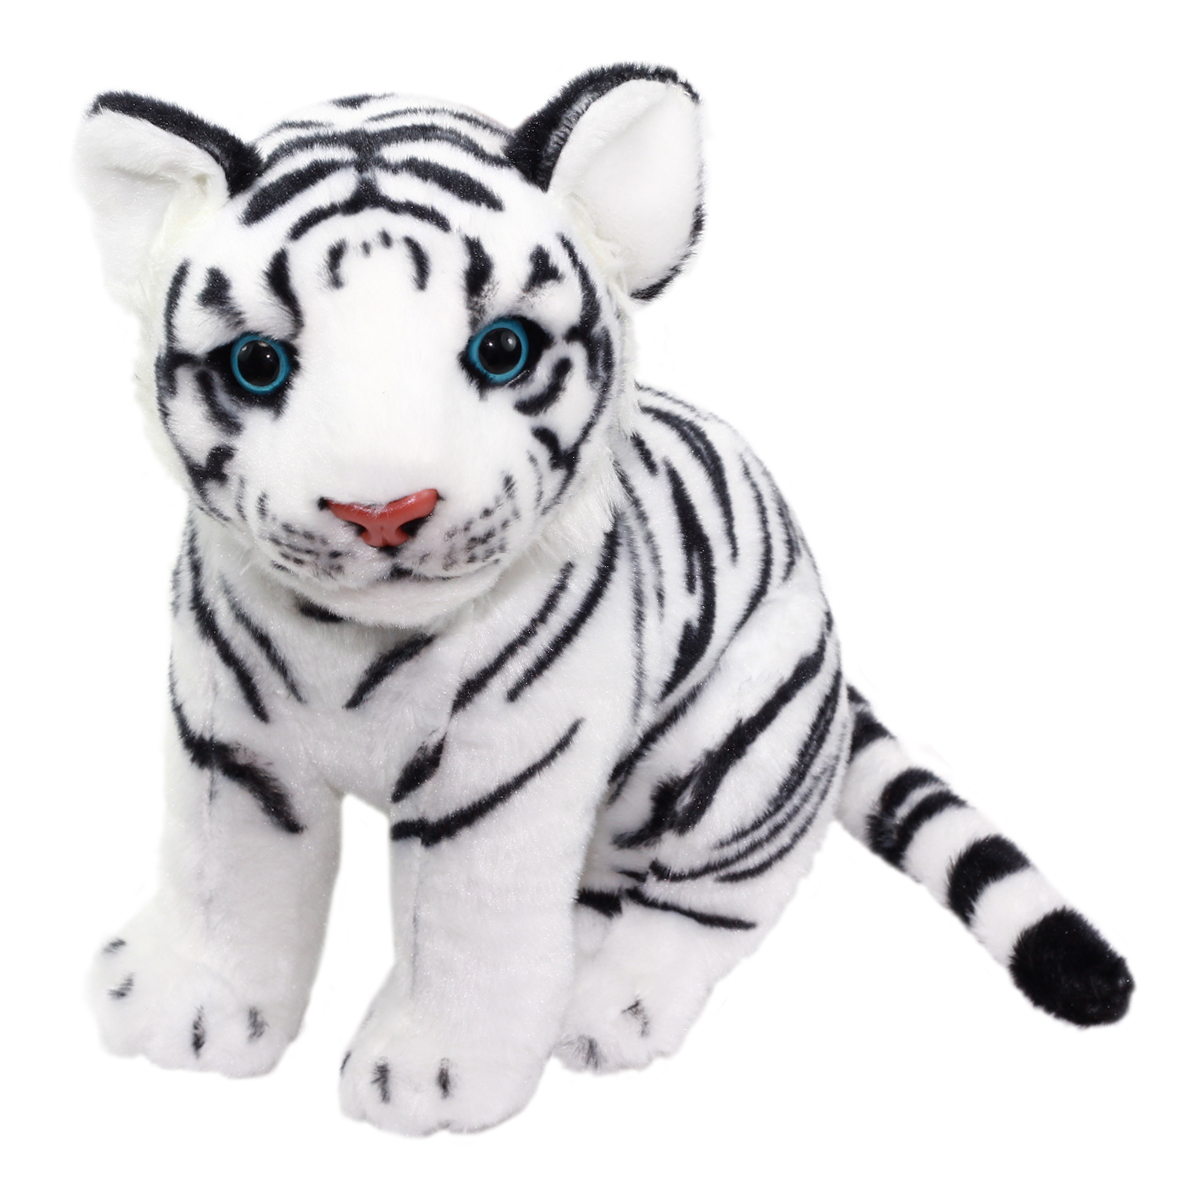 Real Animal Plush Collection Stuffed Animal Toy White Tiger 10 Inches